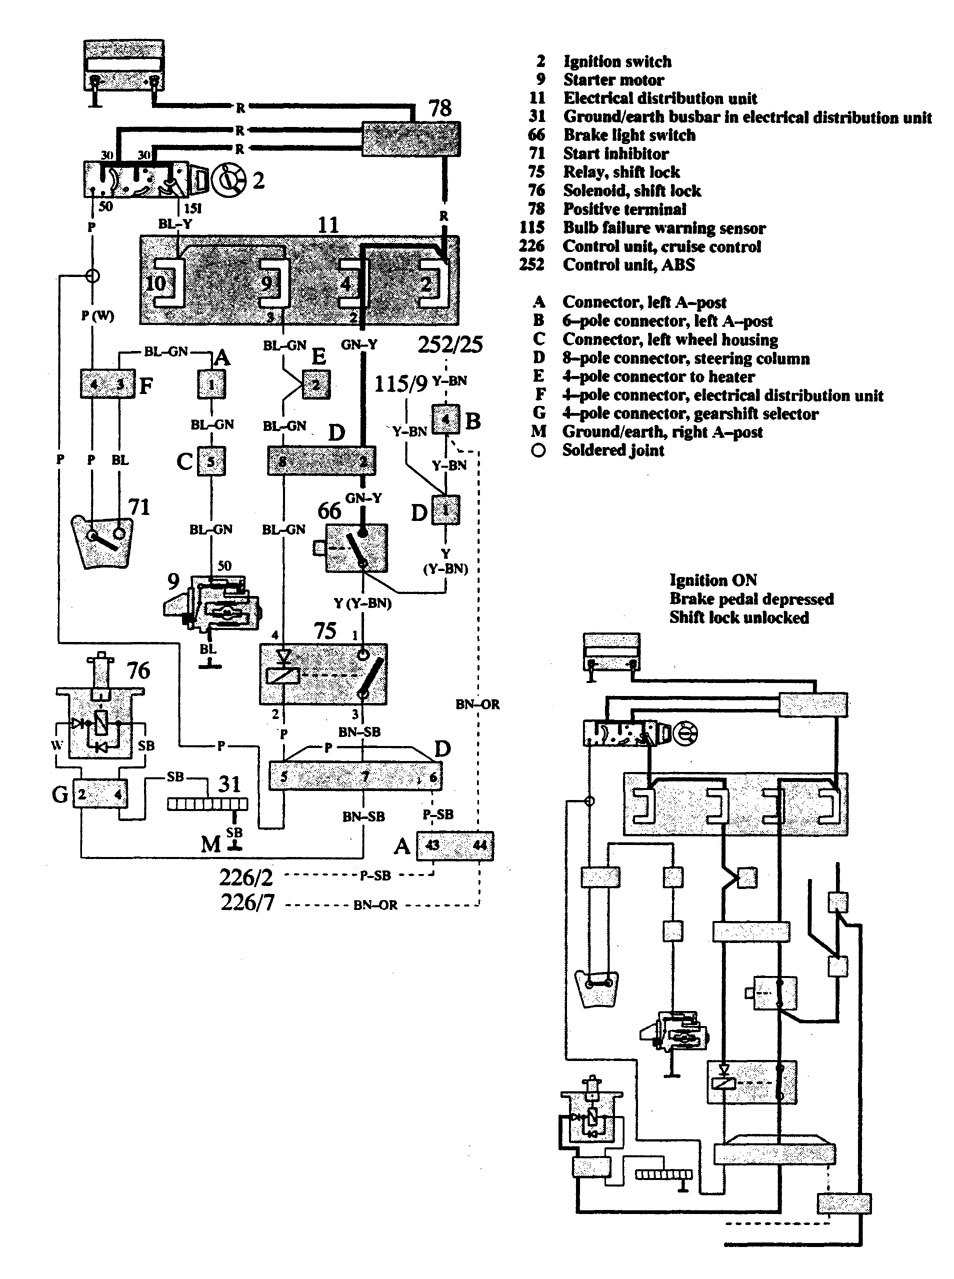 Volvo 740 Fuse Box Wiring Library 92 240 Location 940 Diagram Shift Interlock 1991